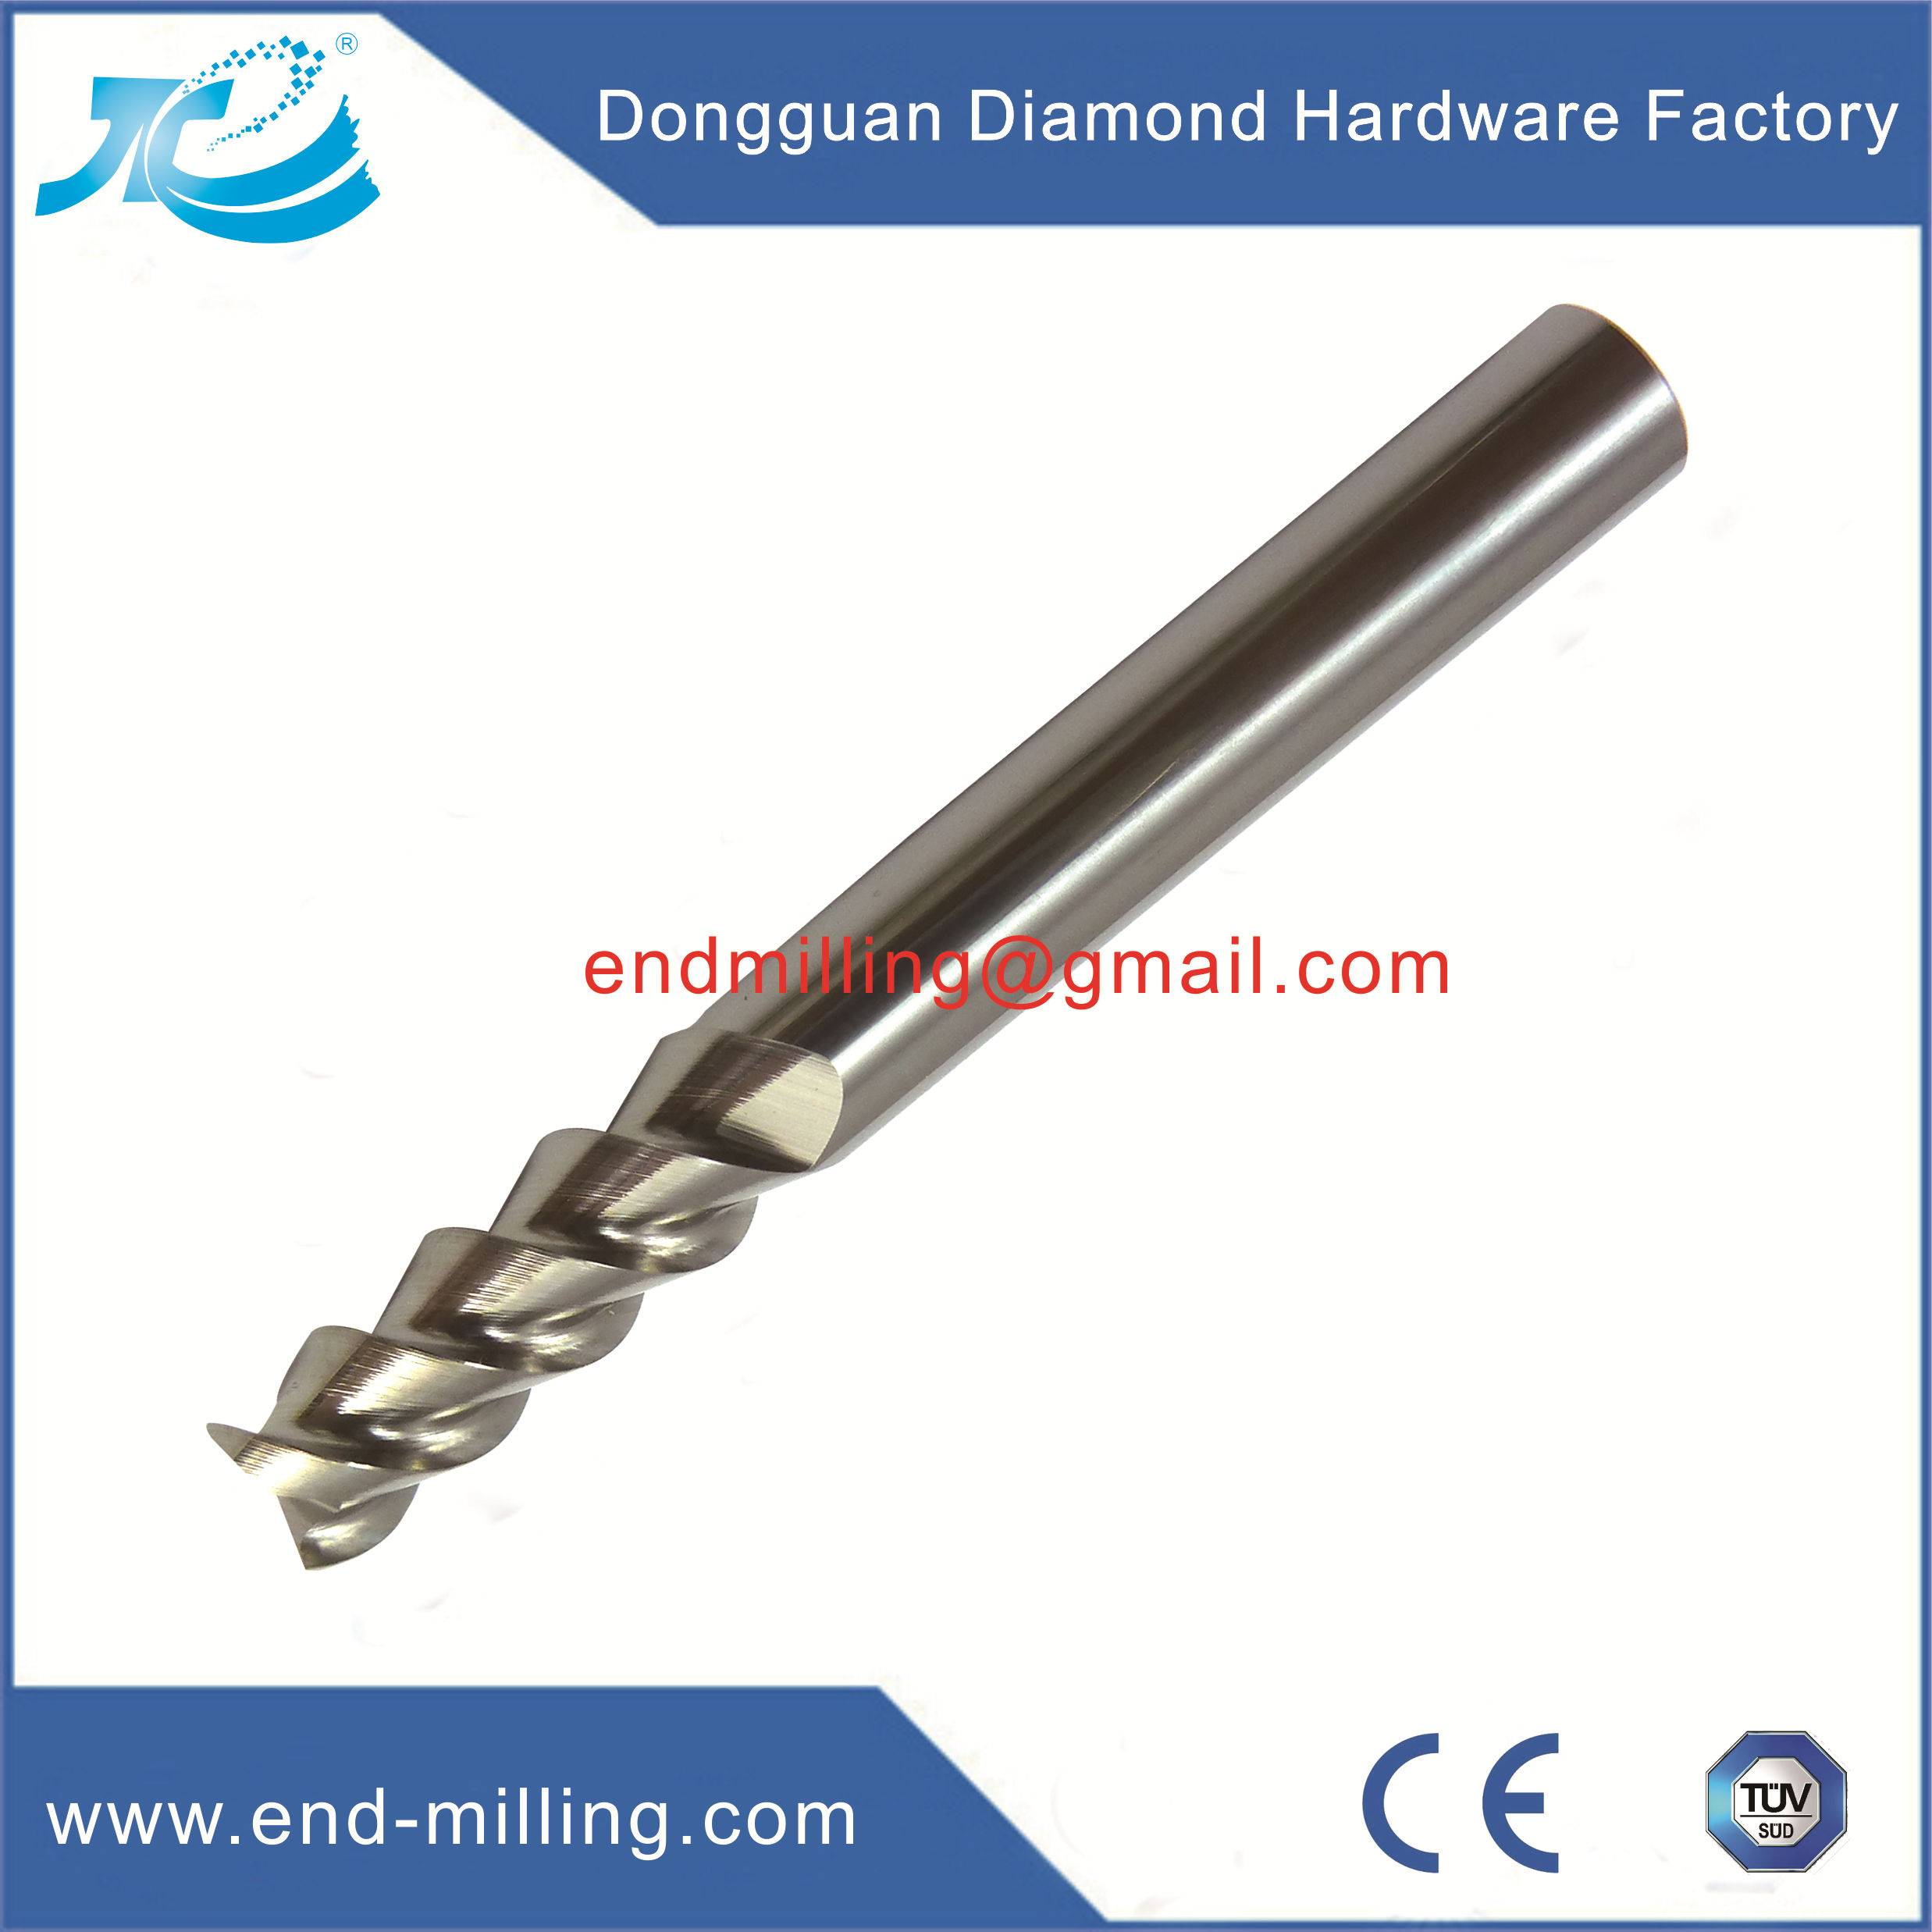 Tungsten Steel End Mill for Aluminum Alloy